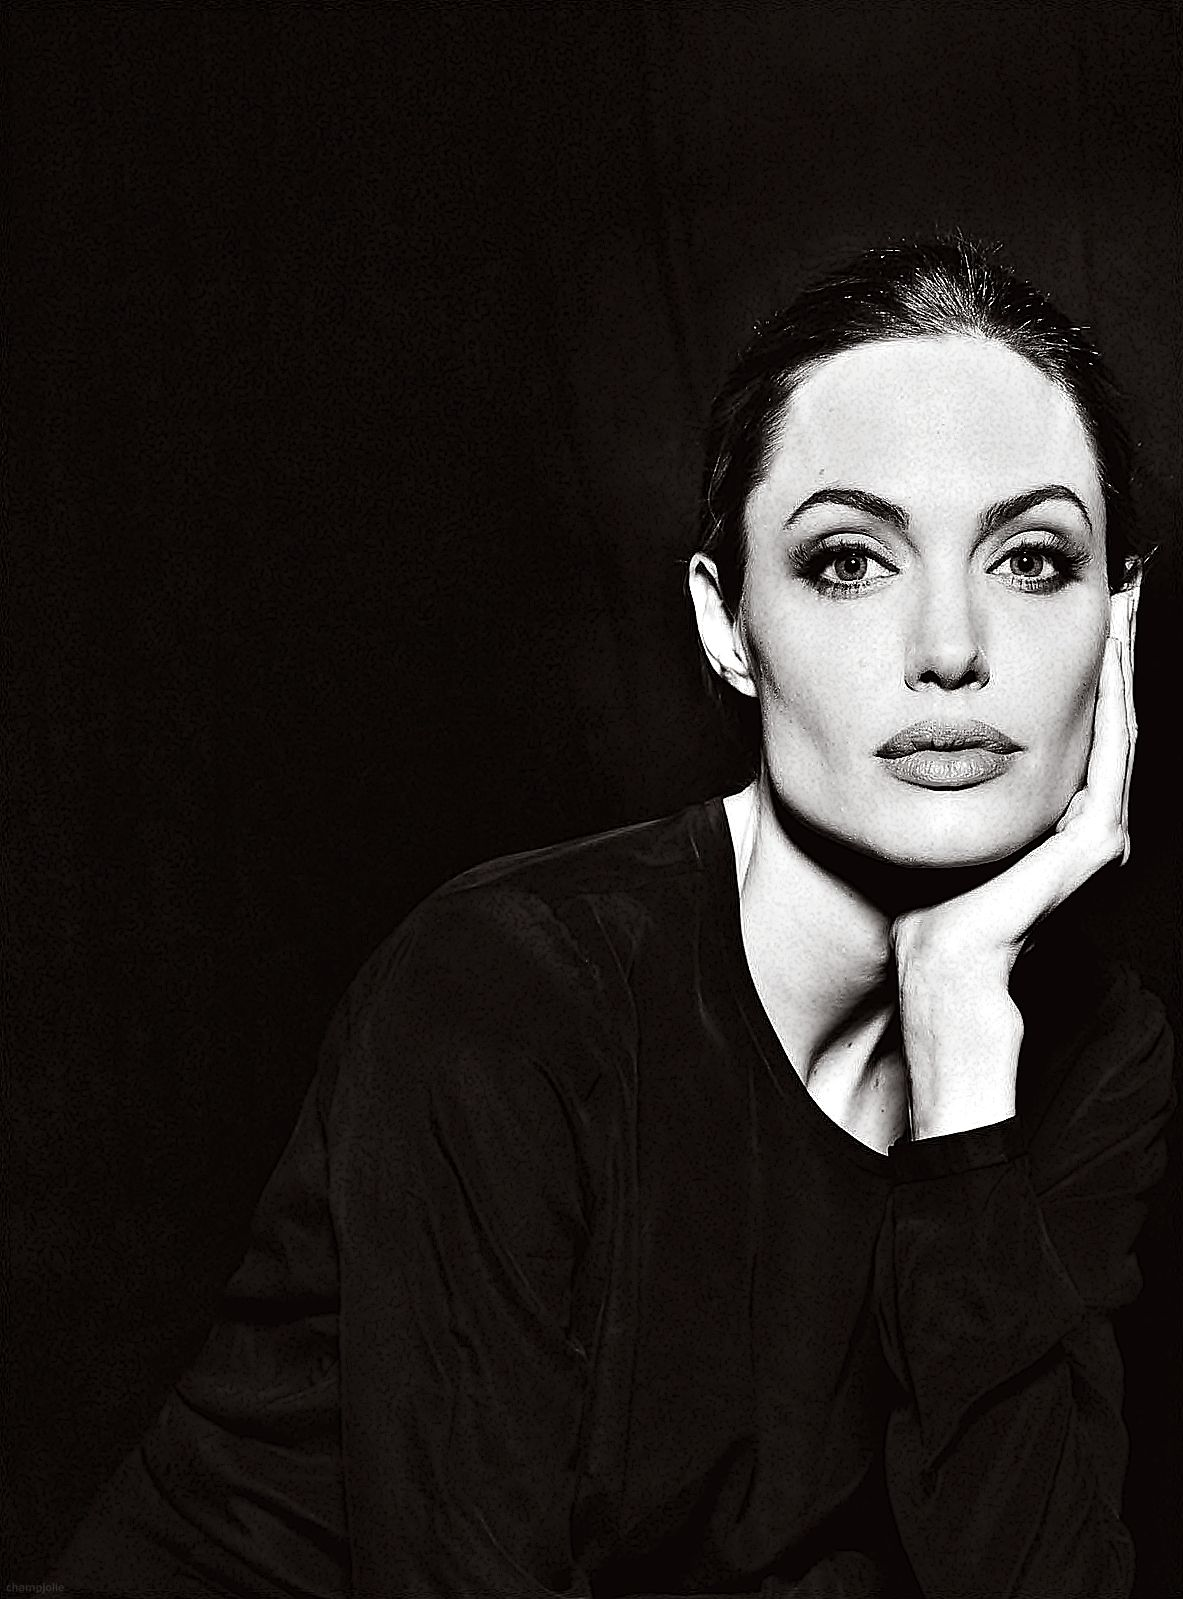 Angelina jolie by annie leibovitz ladies dames lasses annie